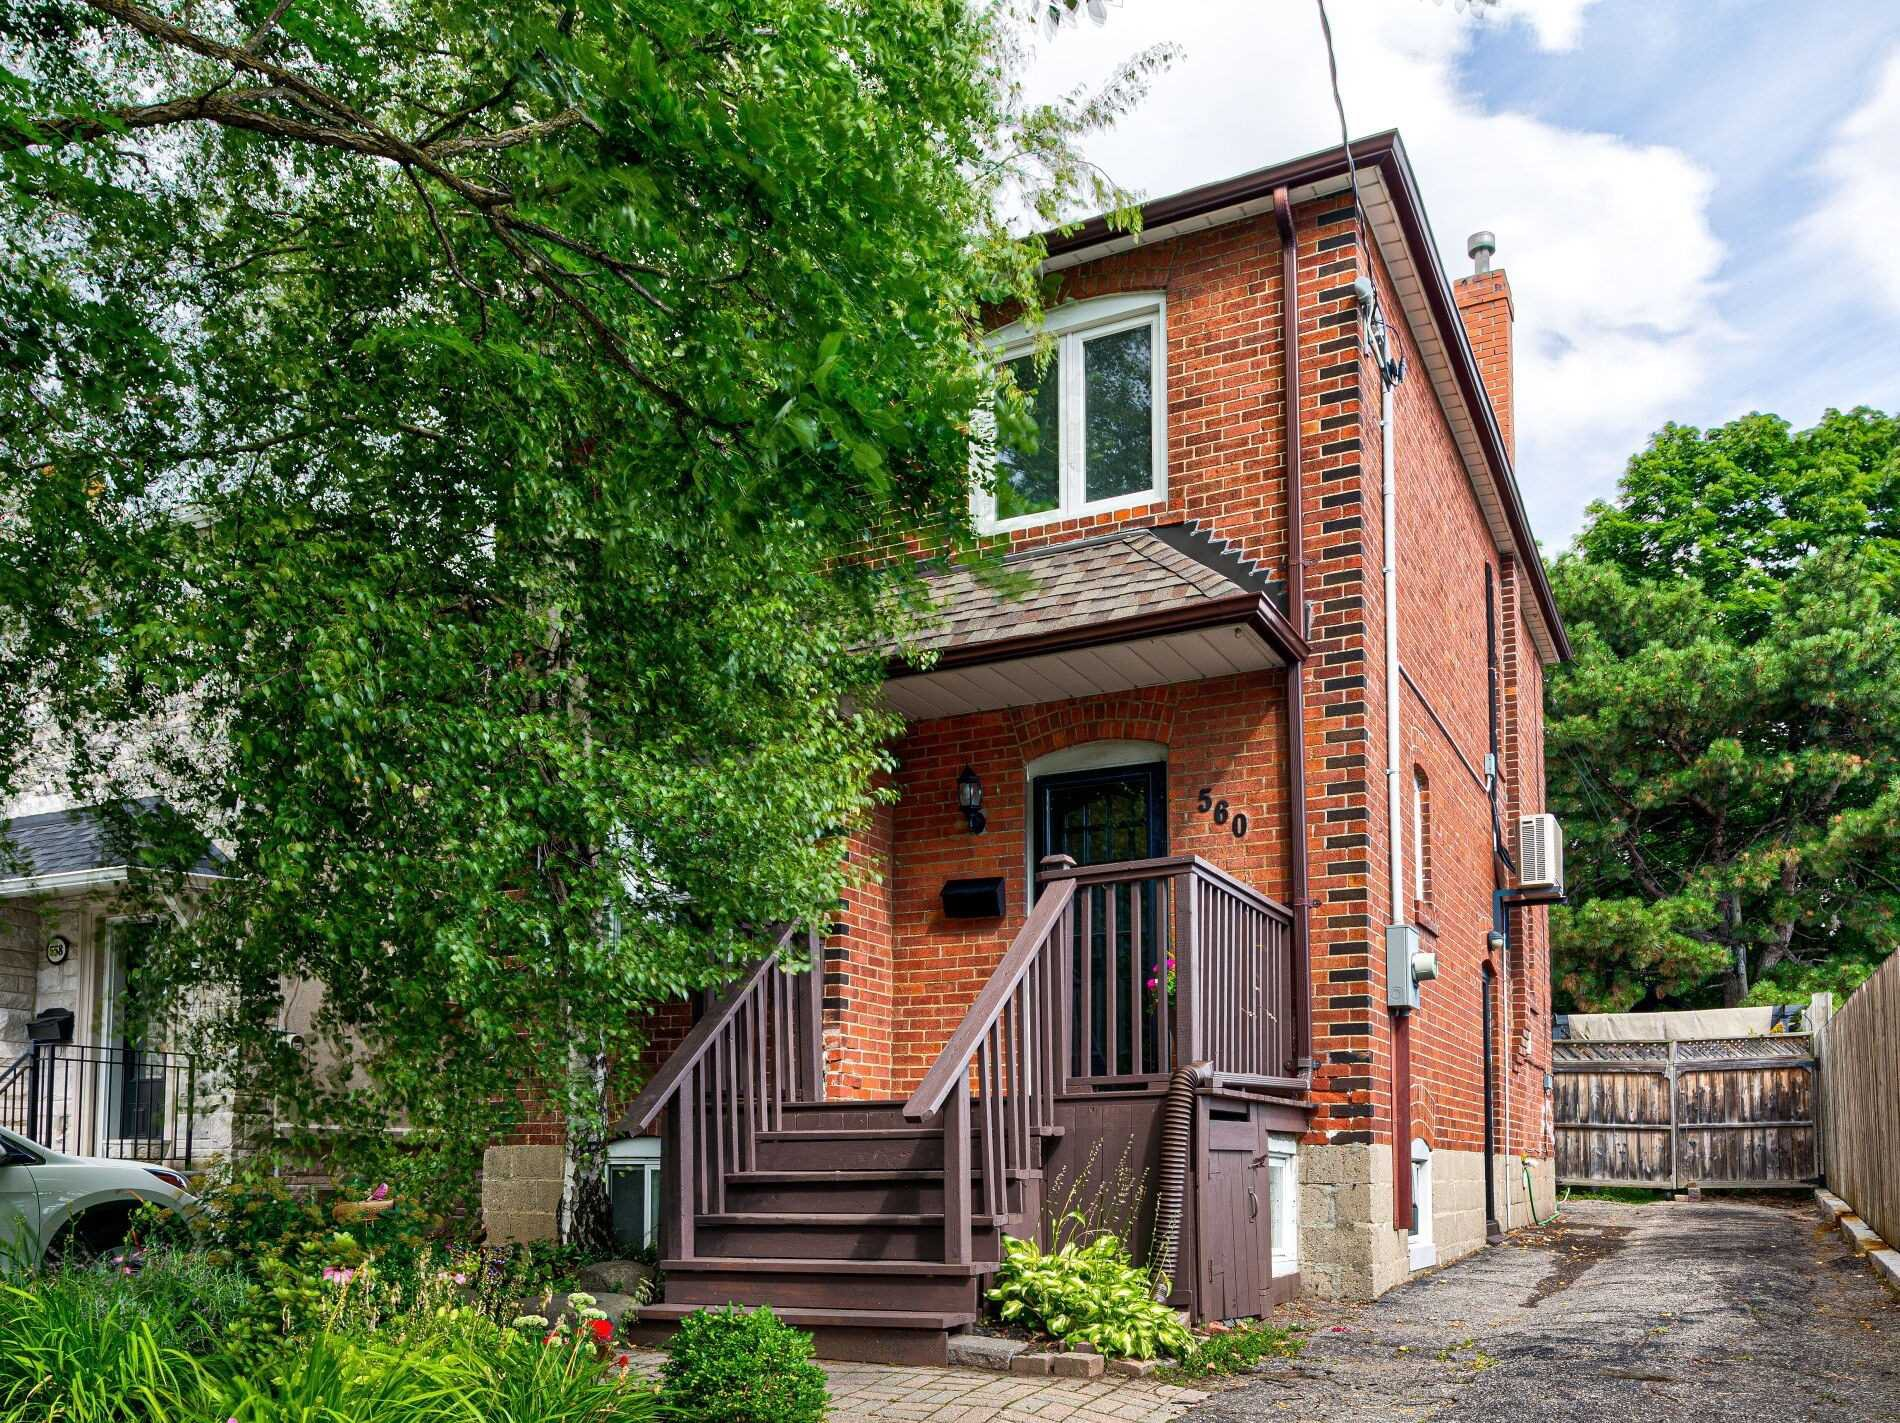 Main Photo: 560 Davisville Avenue in Toronto: Mount Pleasant East House (2 1/2 Storey) for sale (Toronto C10)  : MLS®# C4866933